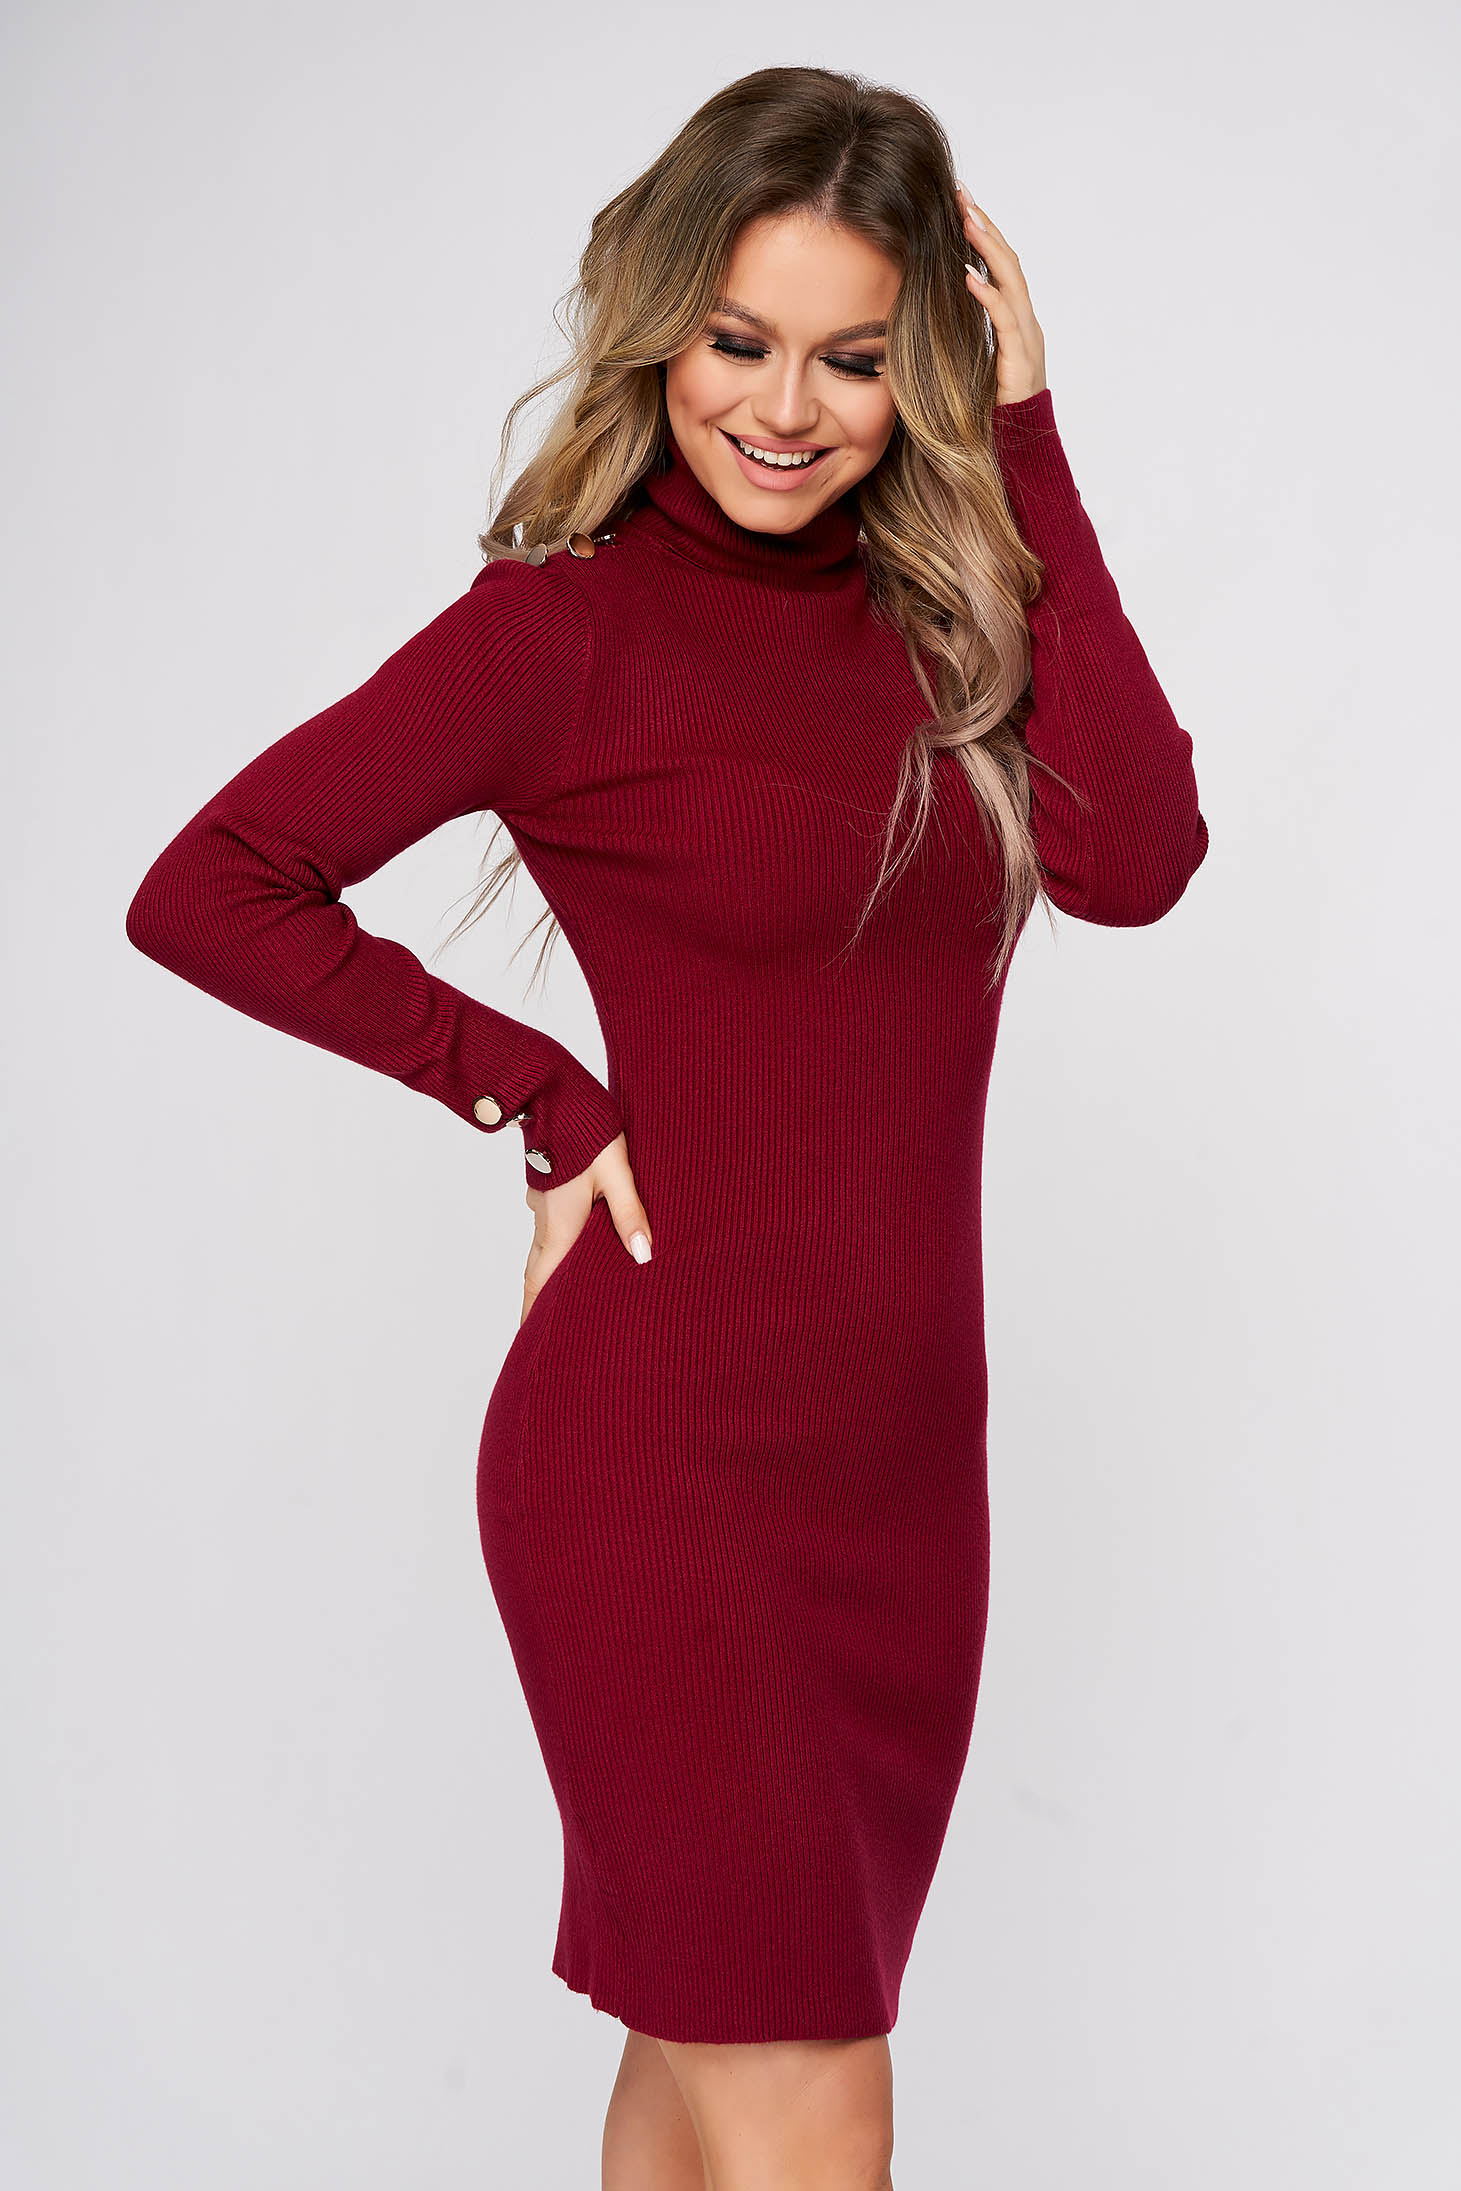 Burgundy dress short cut daily with turtle neck from striped fabric pencil